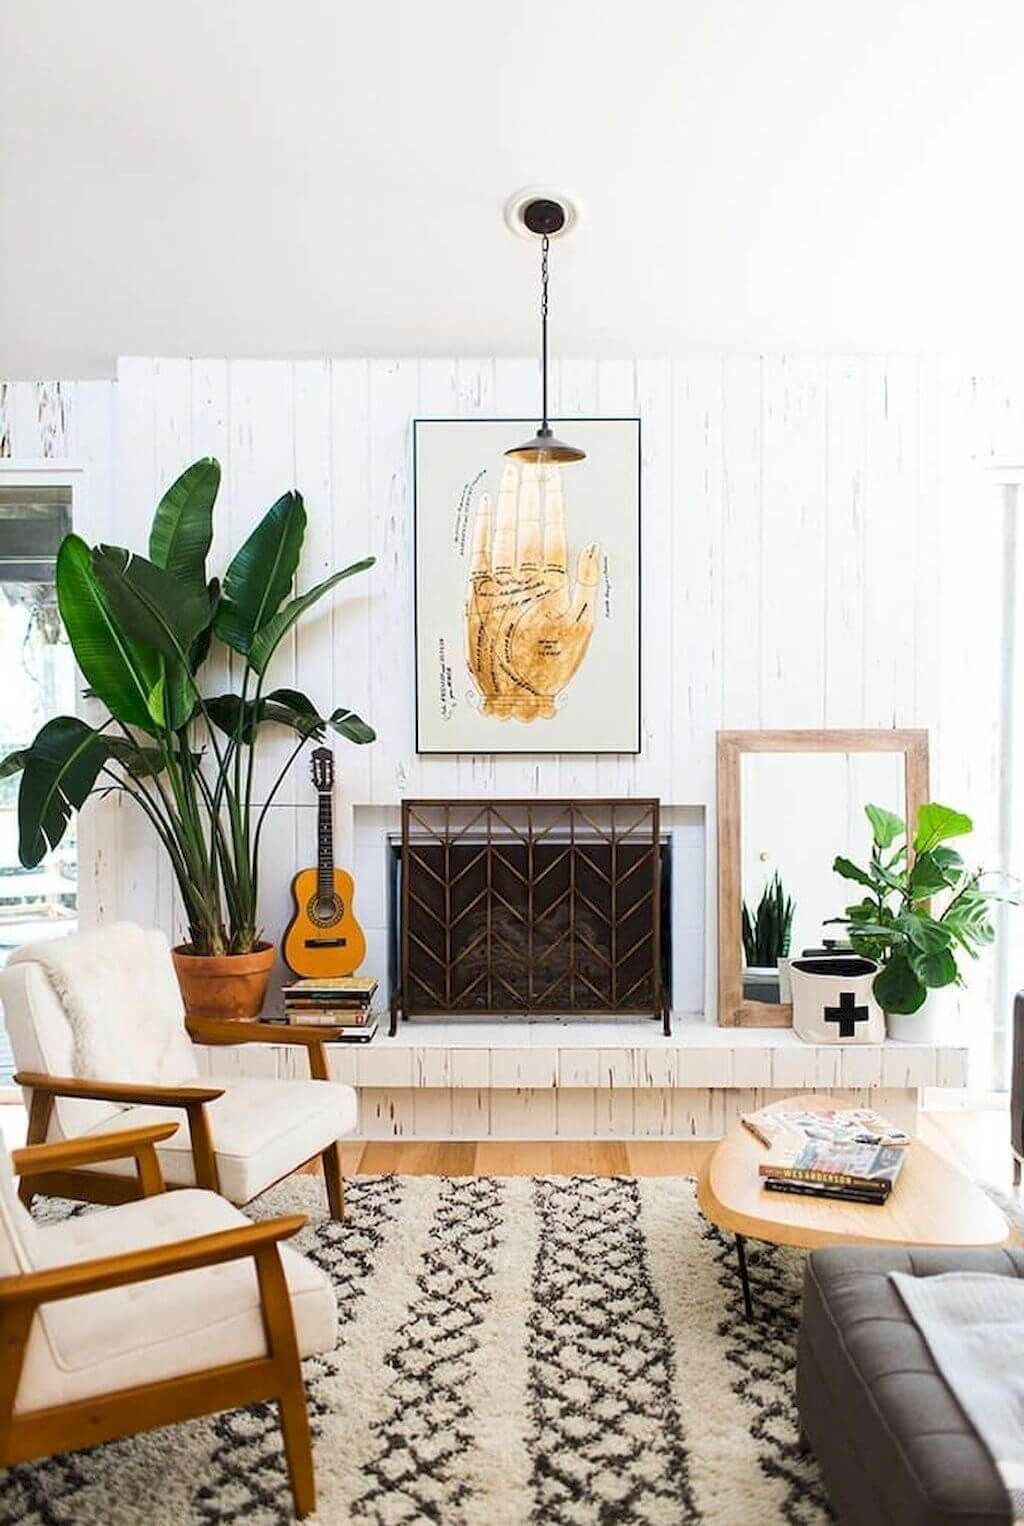 Chic Bohemian Living Room With Contemporary Geometry Black And White Rug Includin Mid Century Living Room Home Decor Inspiration Mid Century Modern Living Room